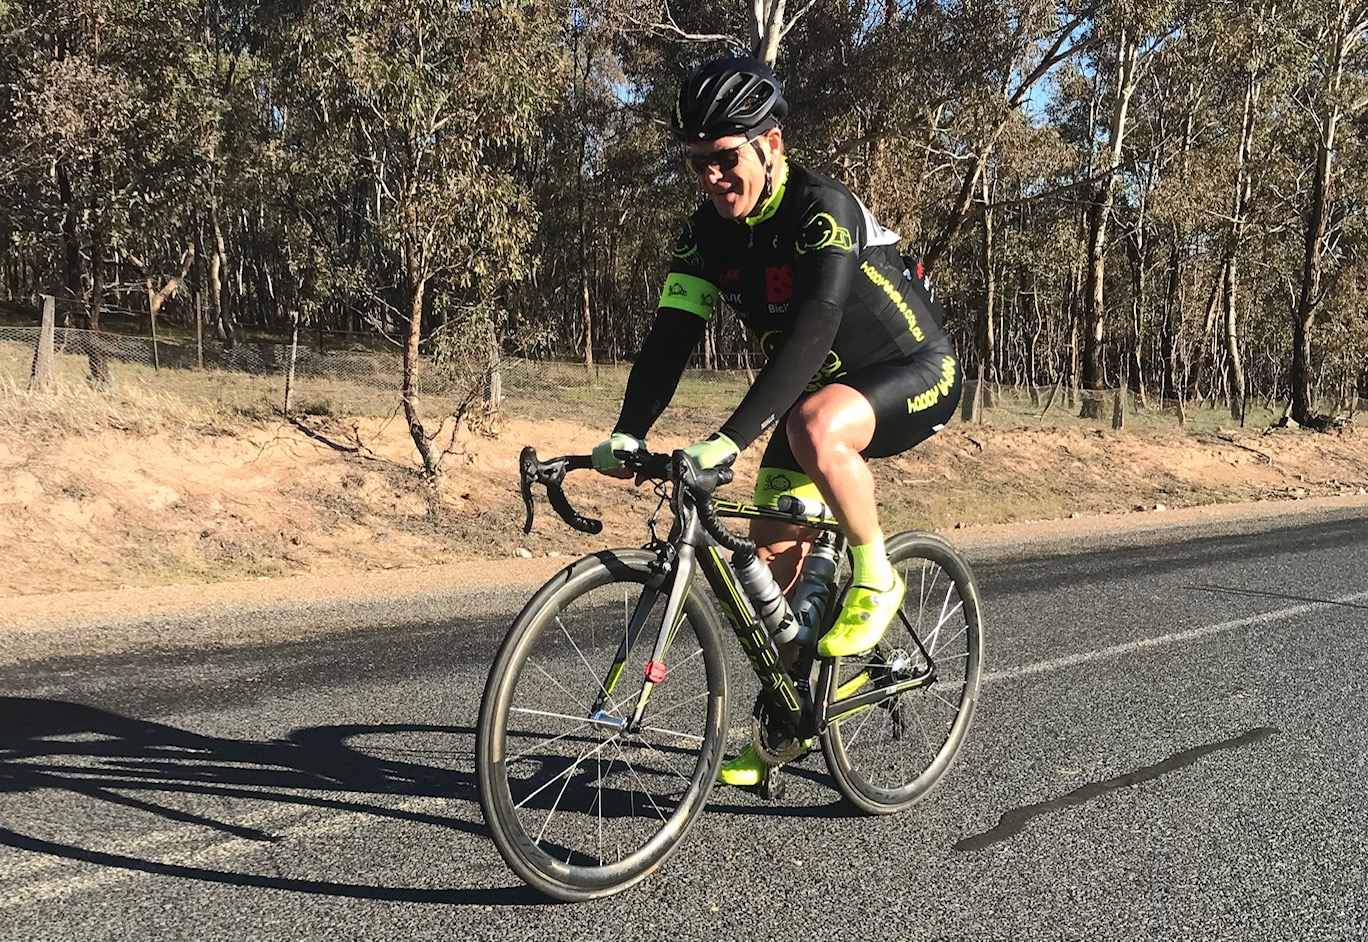 Cootamundra 115k Handicap @ 17 August - Peter Budd had a sniff of the lead group at the 80k mark but settled for 57th